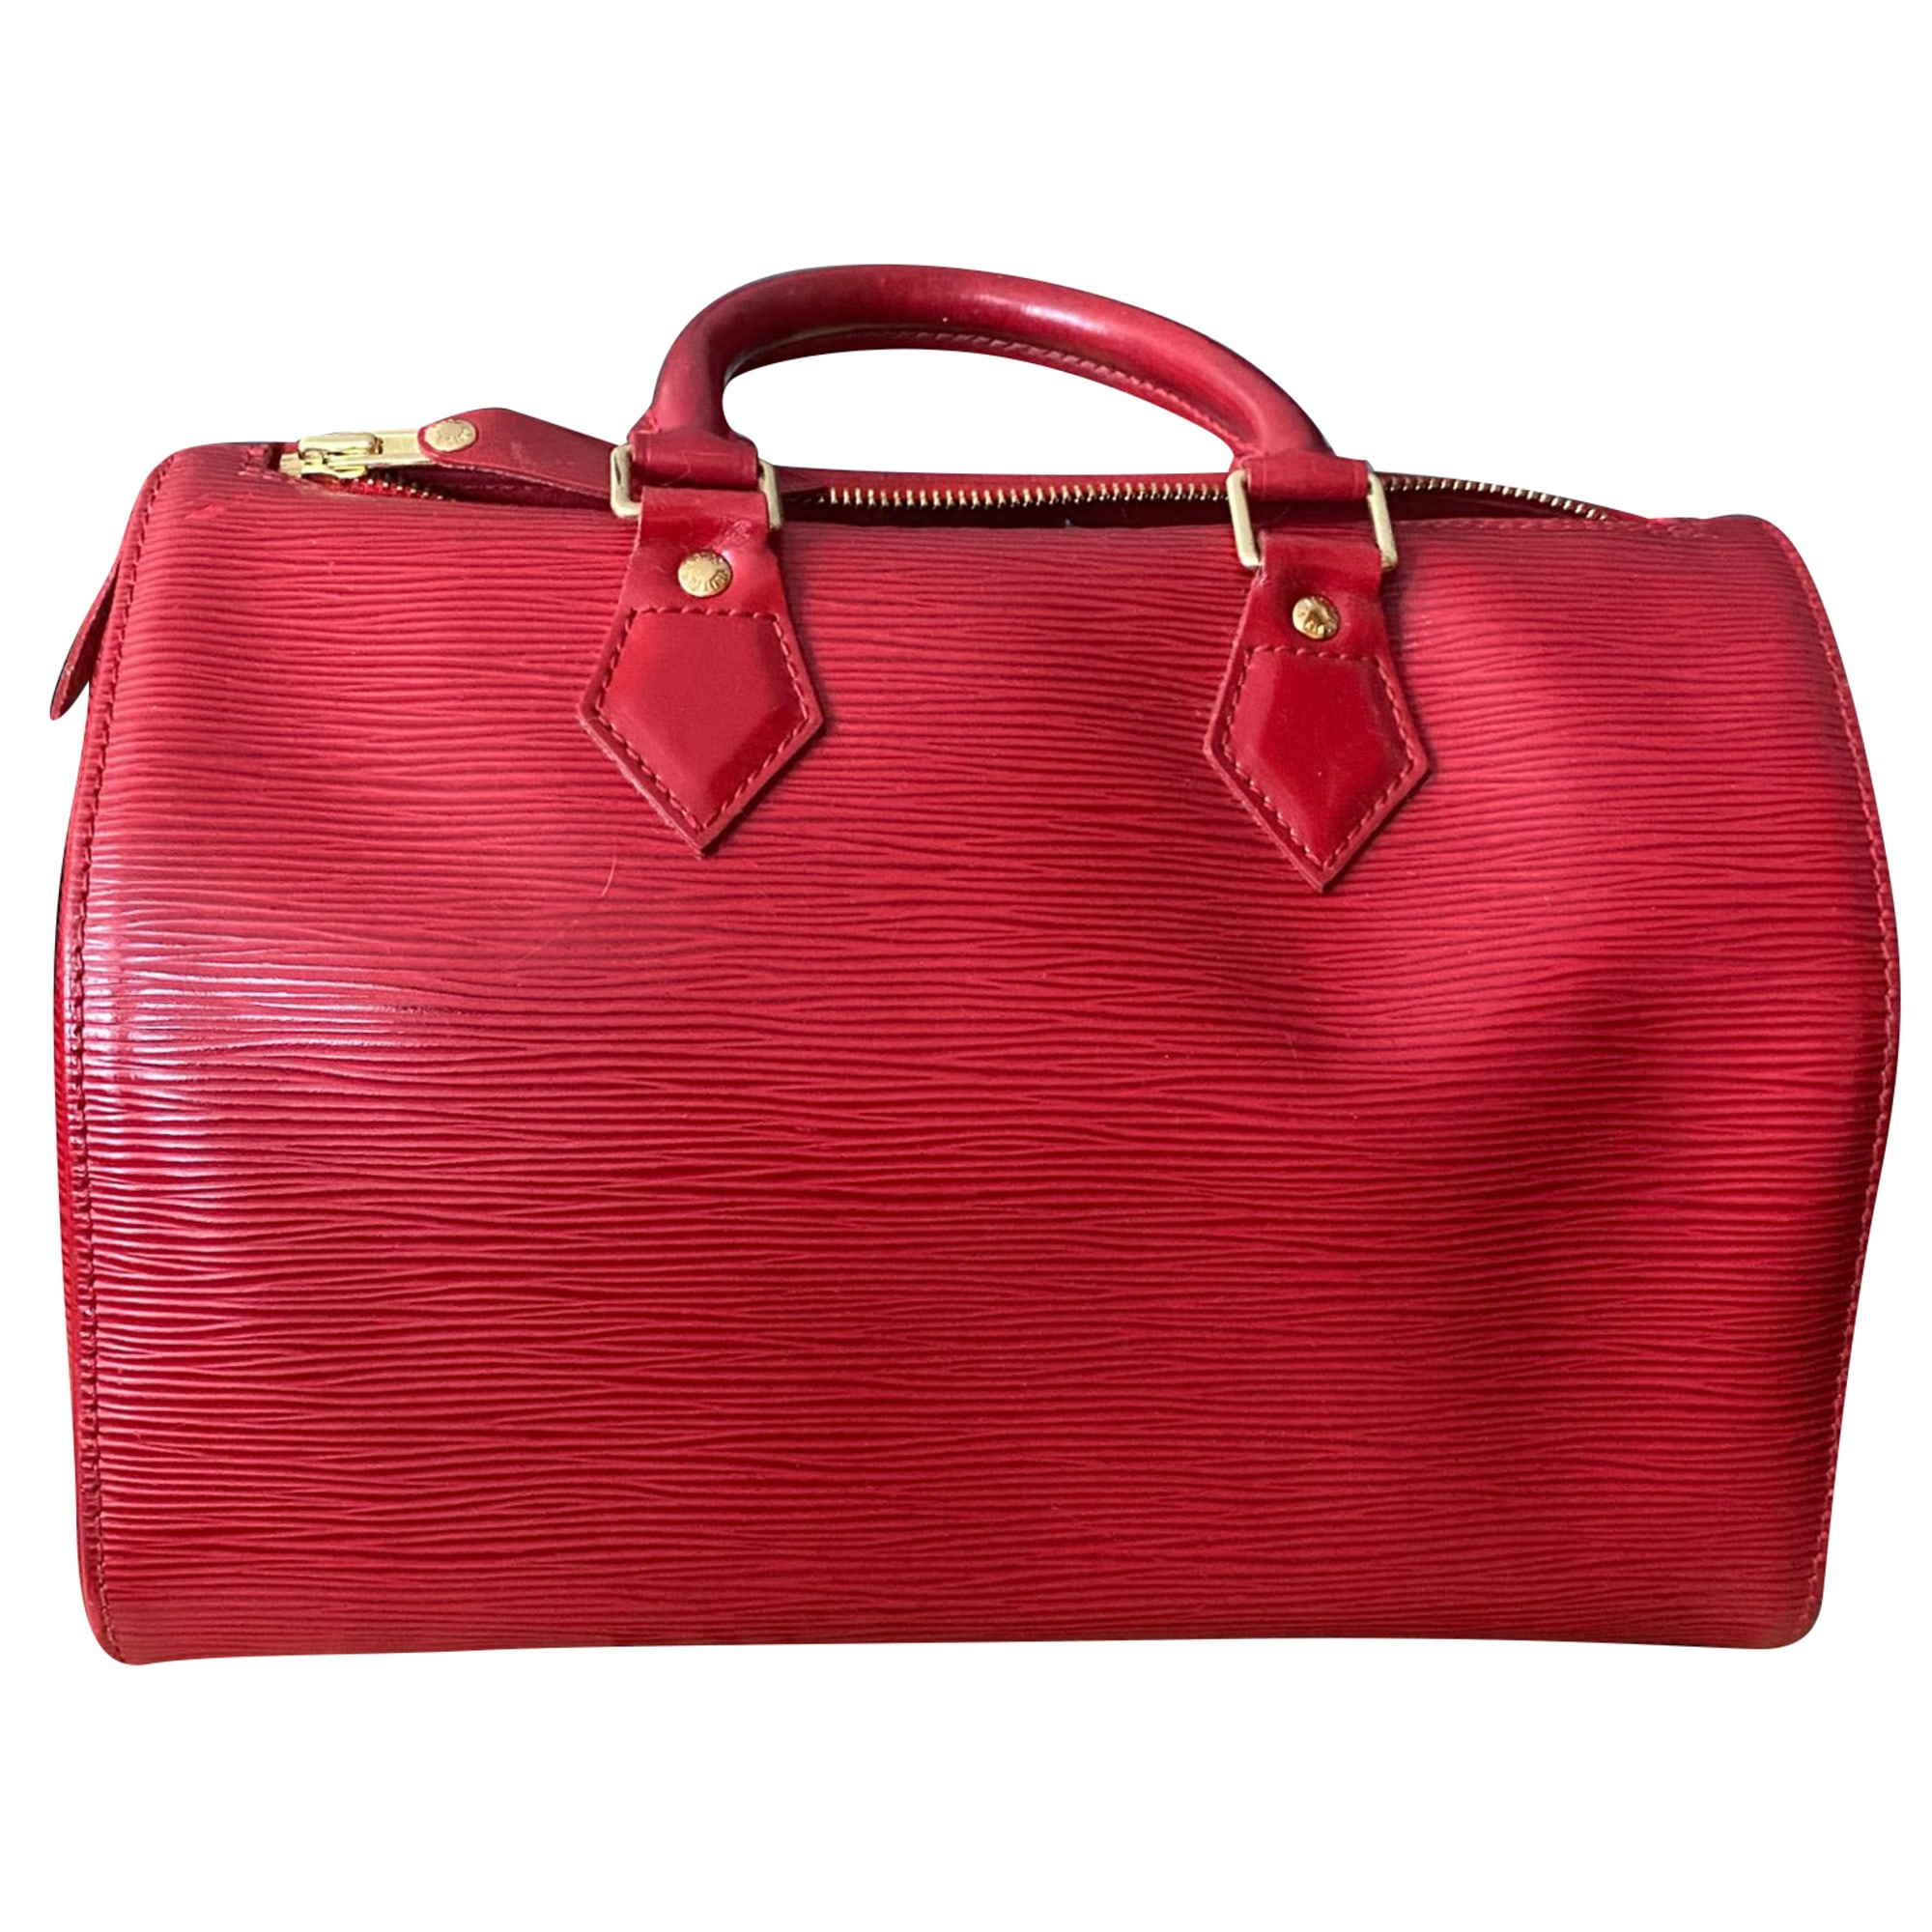 Sac à main en cuir LOUIS VUITTON Speedy Rouge, bordeaux